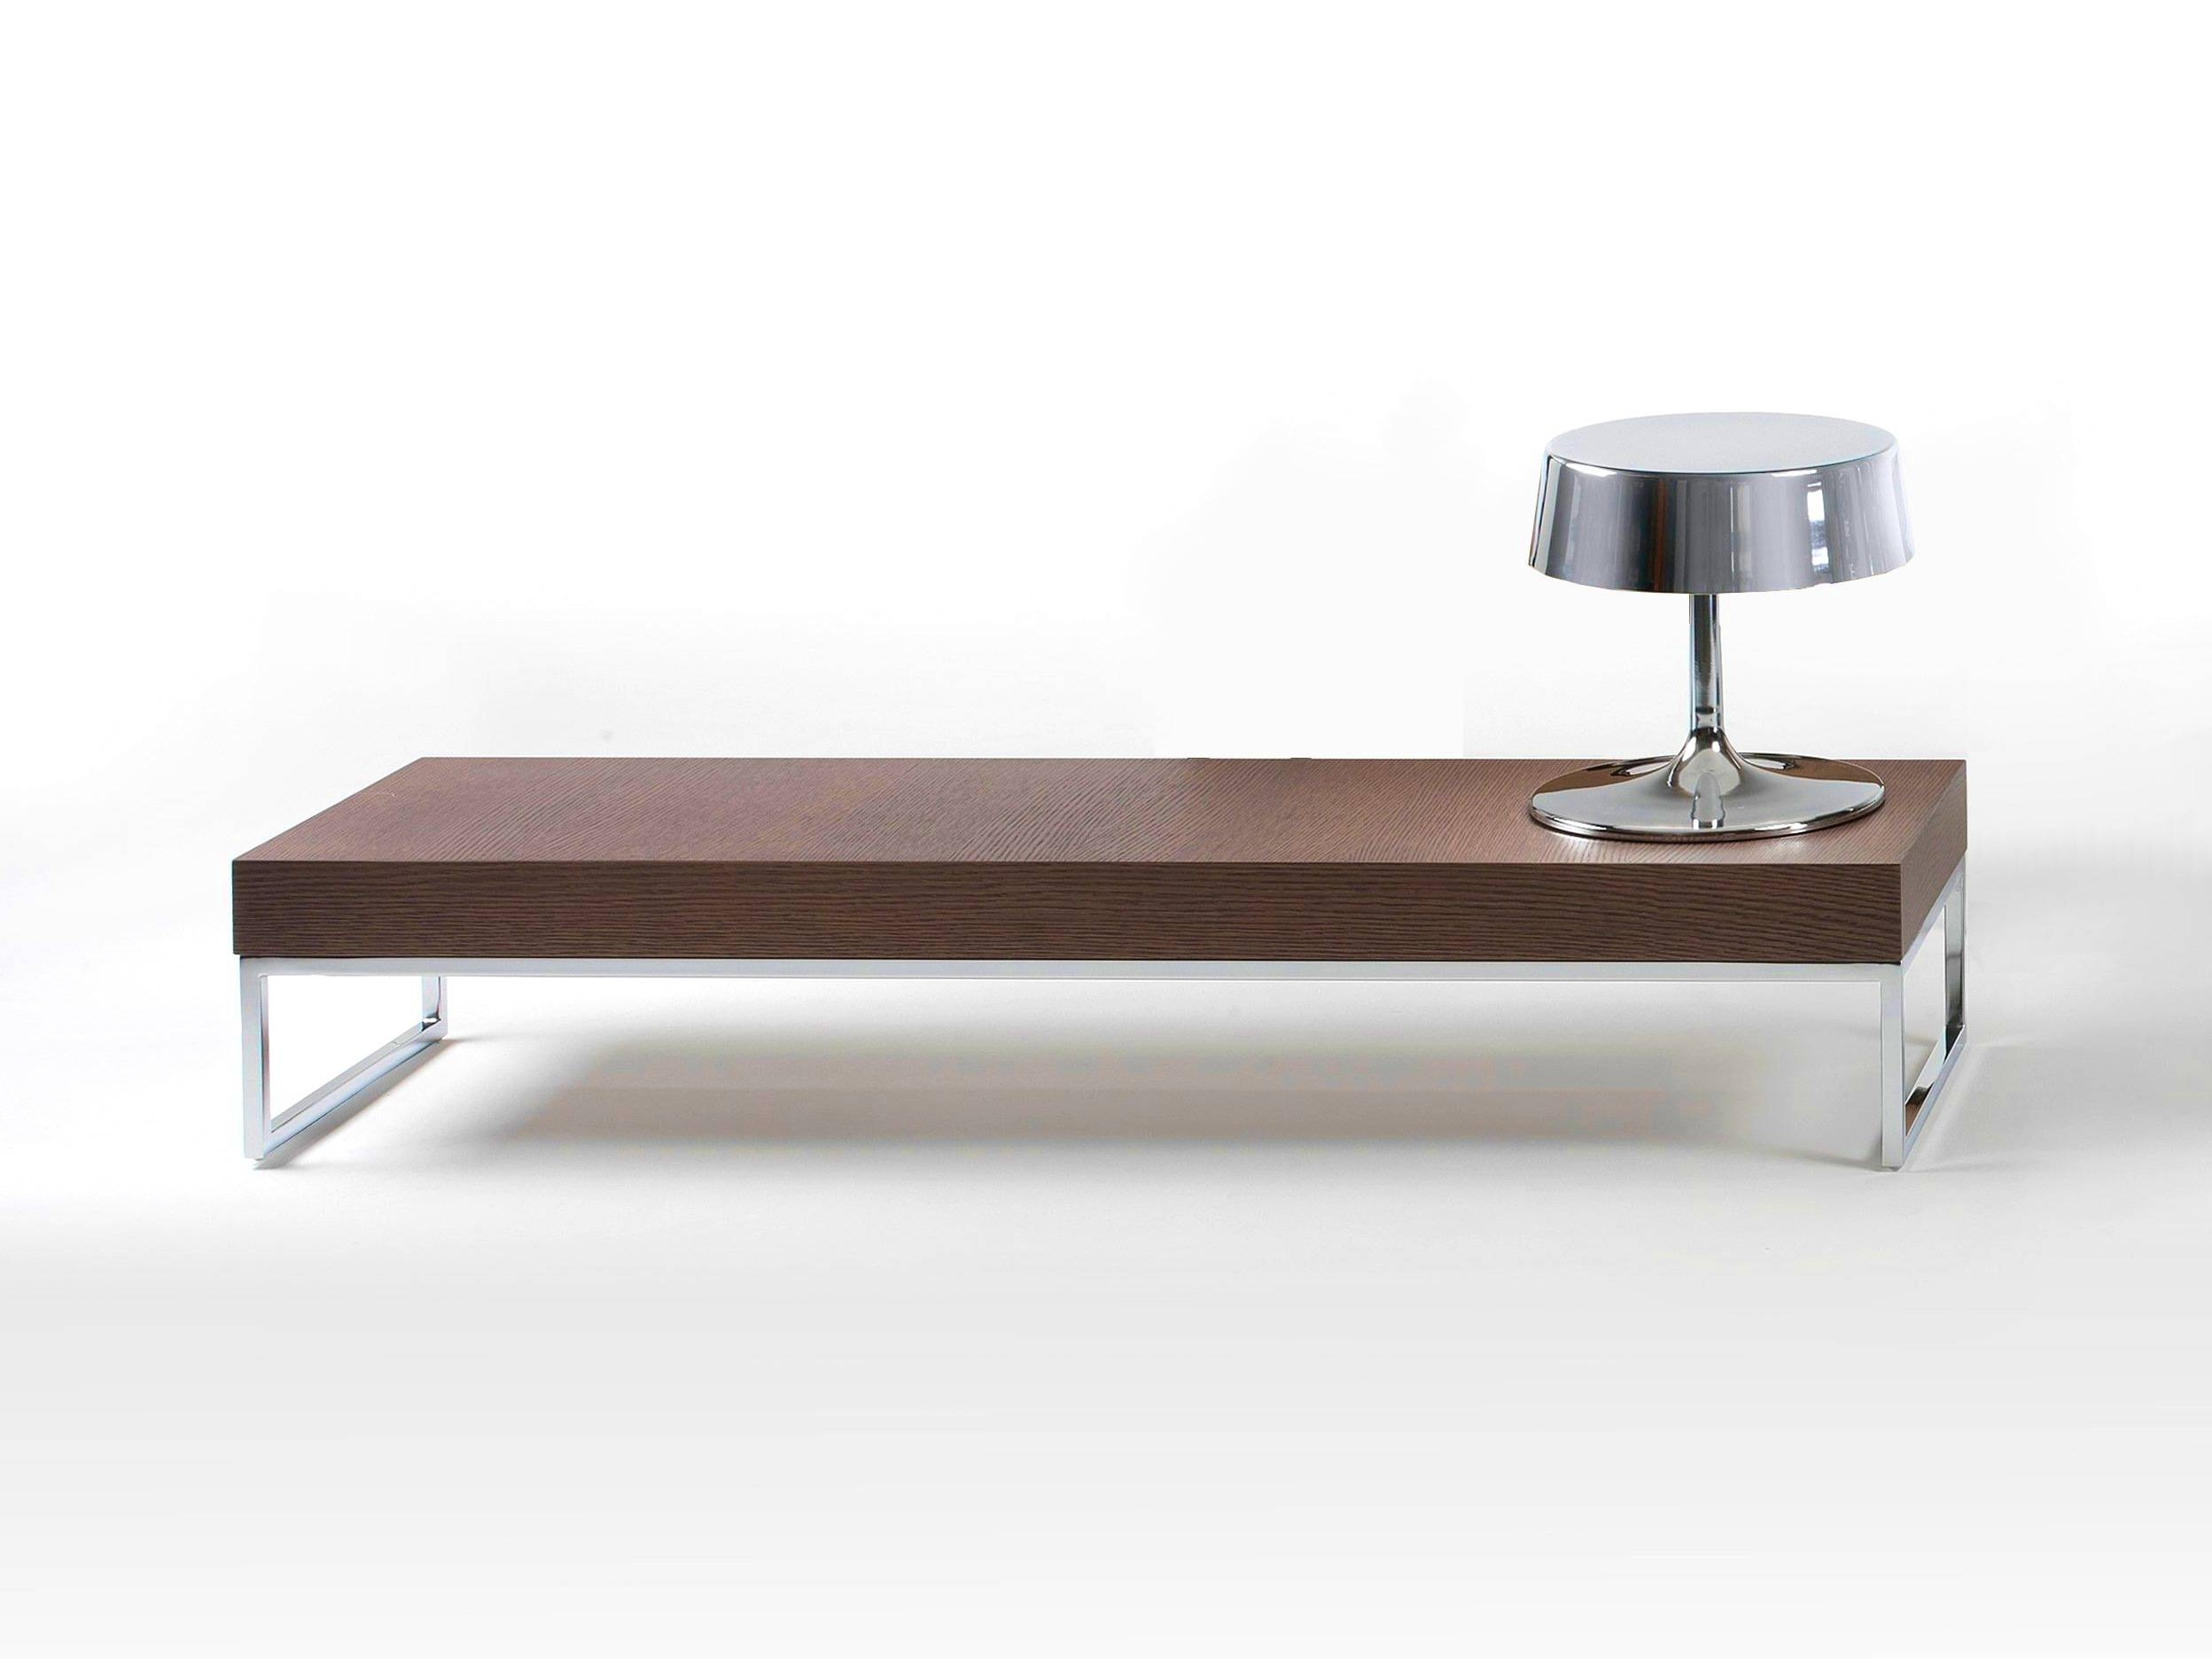 Stunning Low Coffee Table With Kitchen Low Modern Coffee Table Low Intended For Large Low Wood Coffee Tables (View 22 of 30)